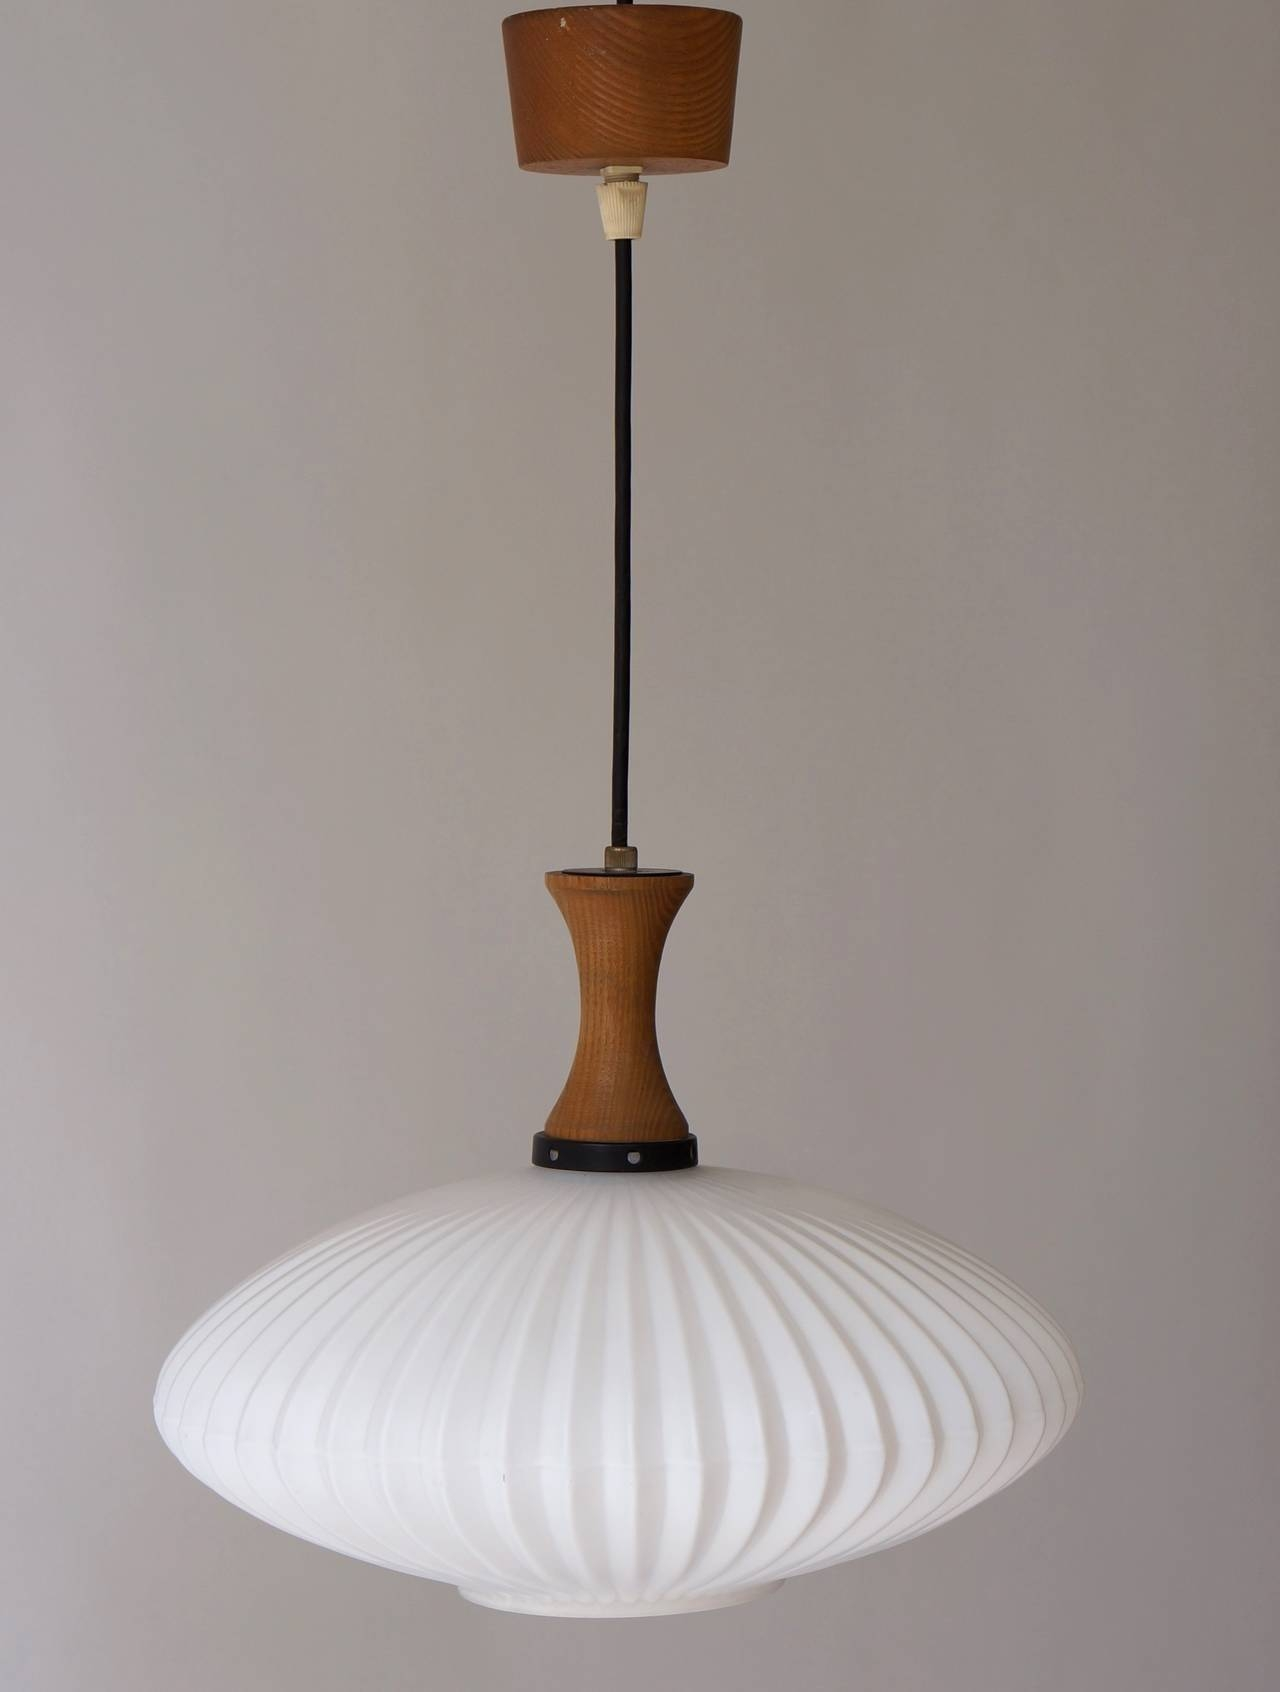 Danish Pendant Light – Baby Exit Intended For Cheap Pendant Lighting (View 5 of 15)